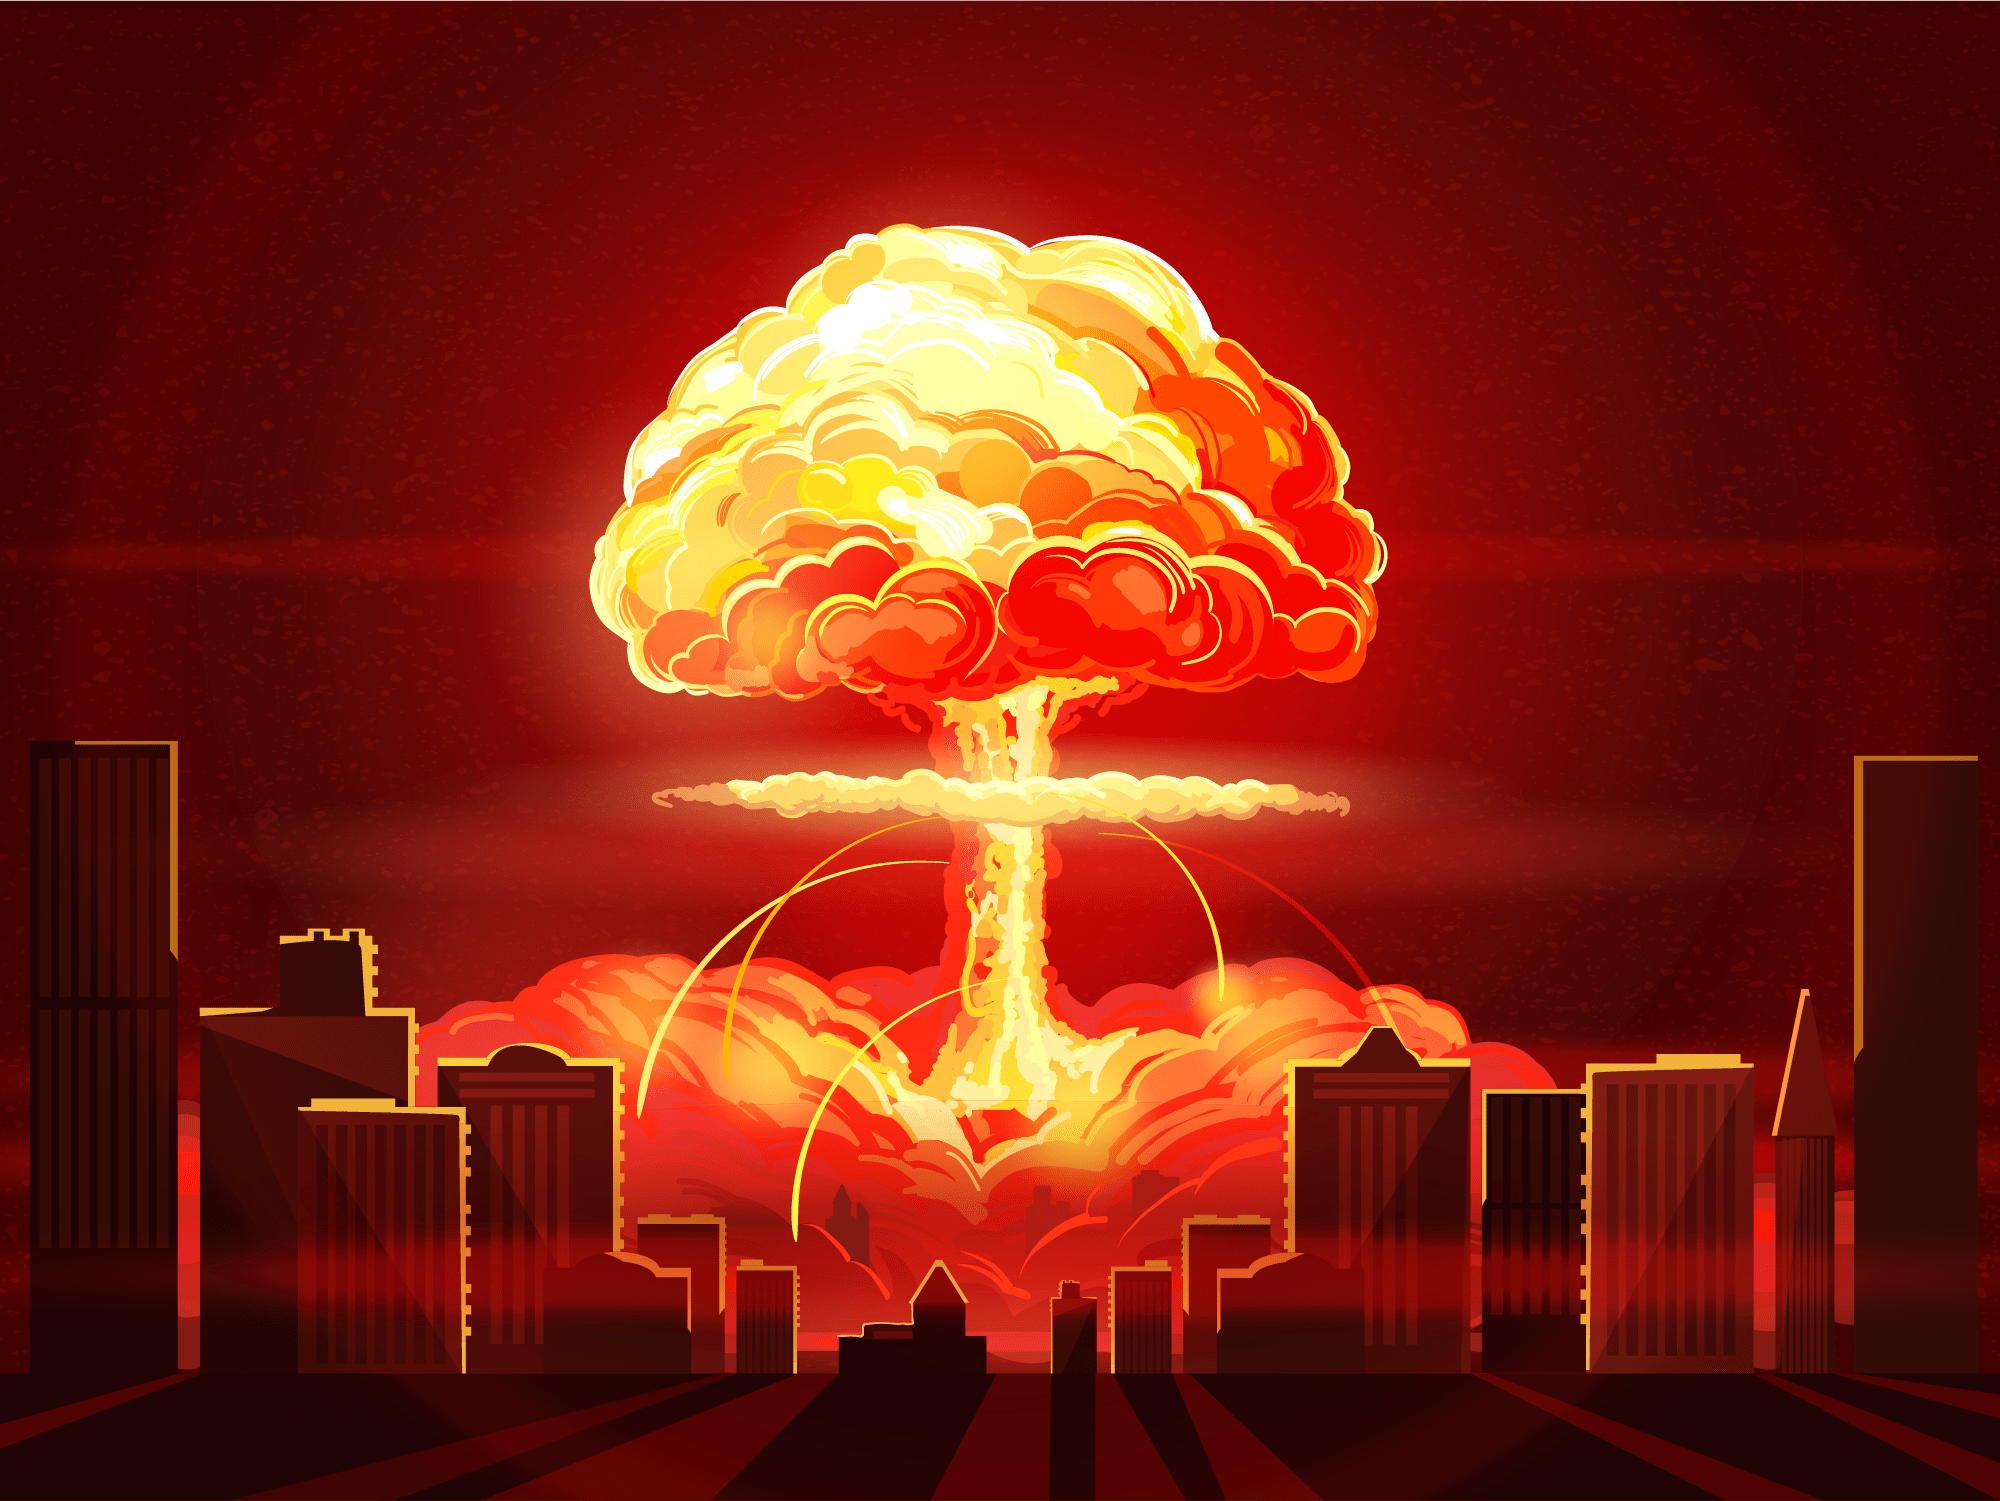 Fall Out Boy Symbol Wallpaper This Nuclear Explosion Simulator Shows Where Radioactive